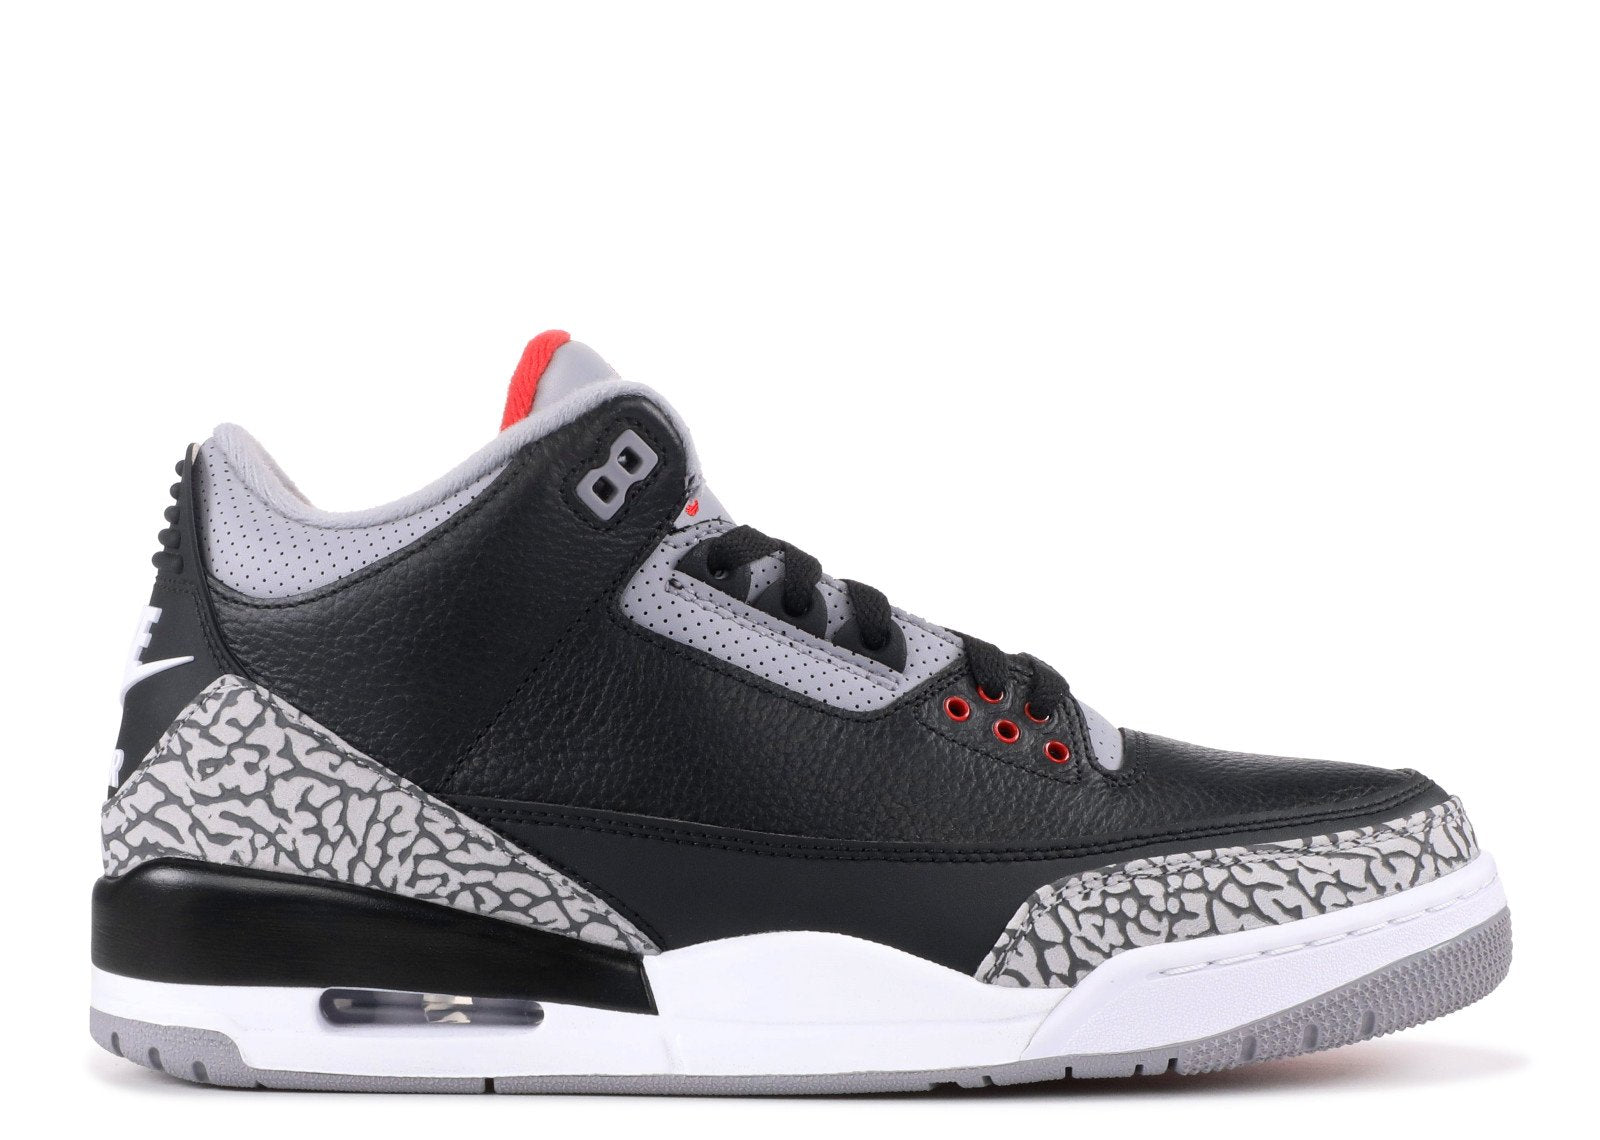 Jordan 3 Retro Black Cement (2018) - CookiesandKicksLA